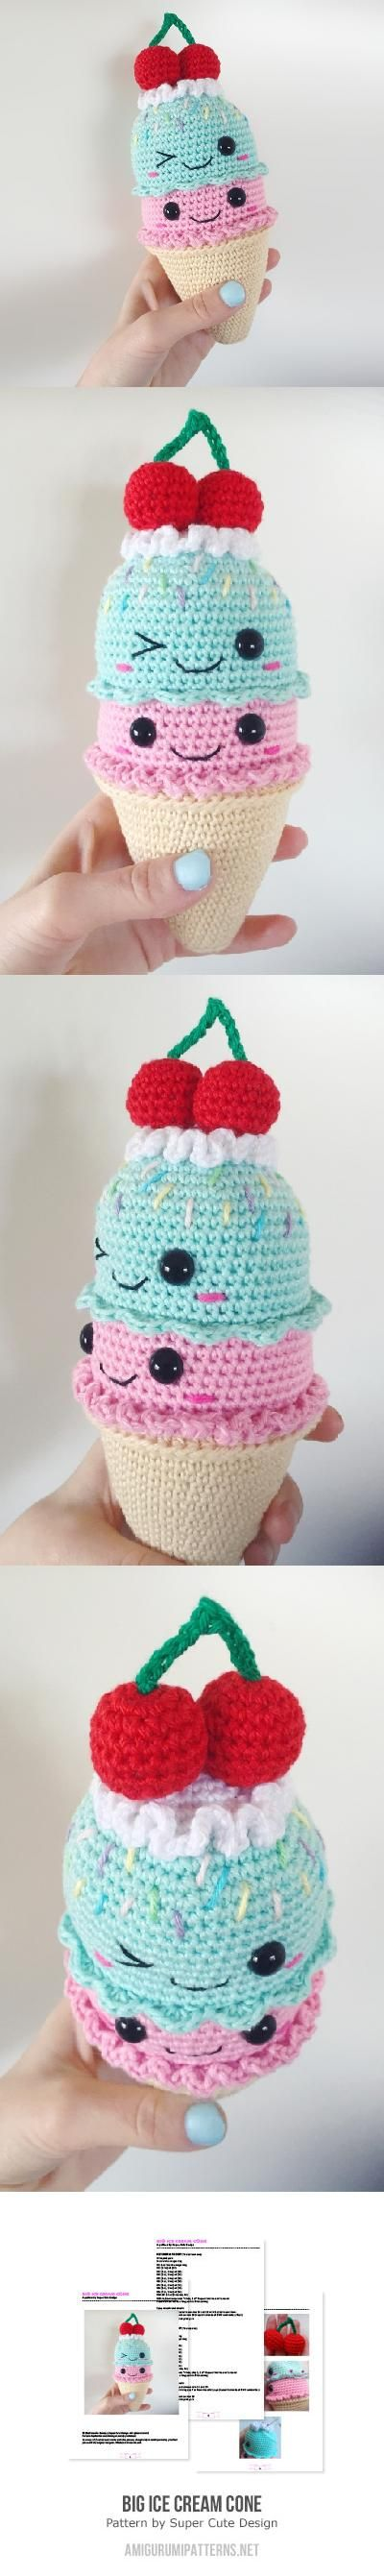 Amigurumi Ice Cream Pattern : Big Ice Cream Cone amigurumi pattern by Super Cute Design ...